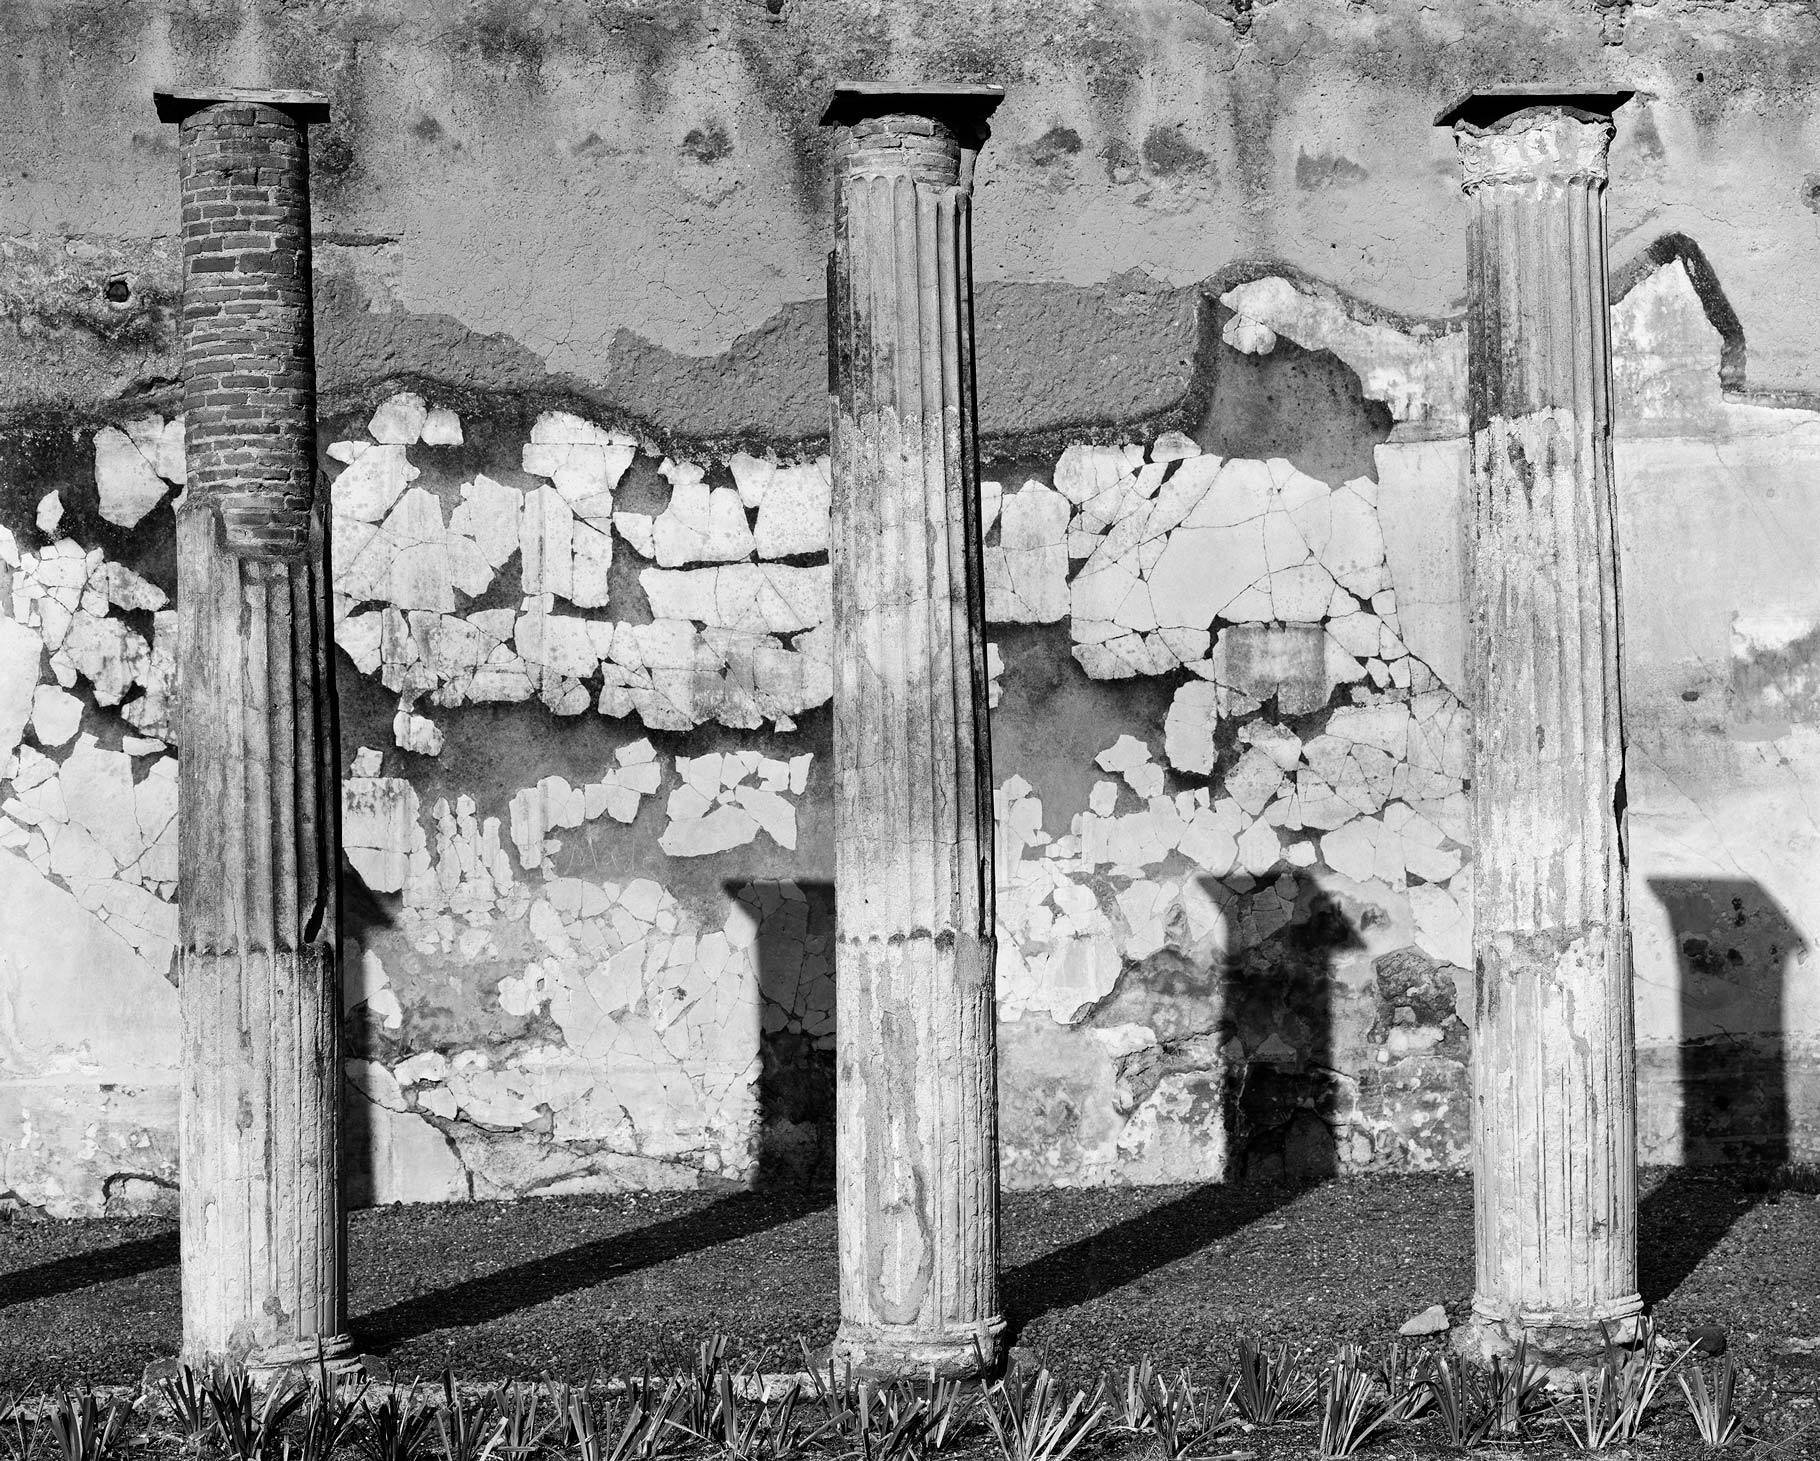 Edge of peristyle (Pompeian building), 2013